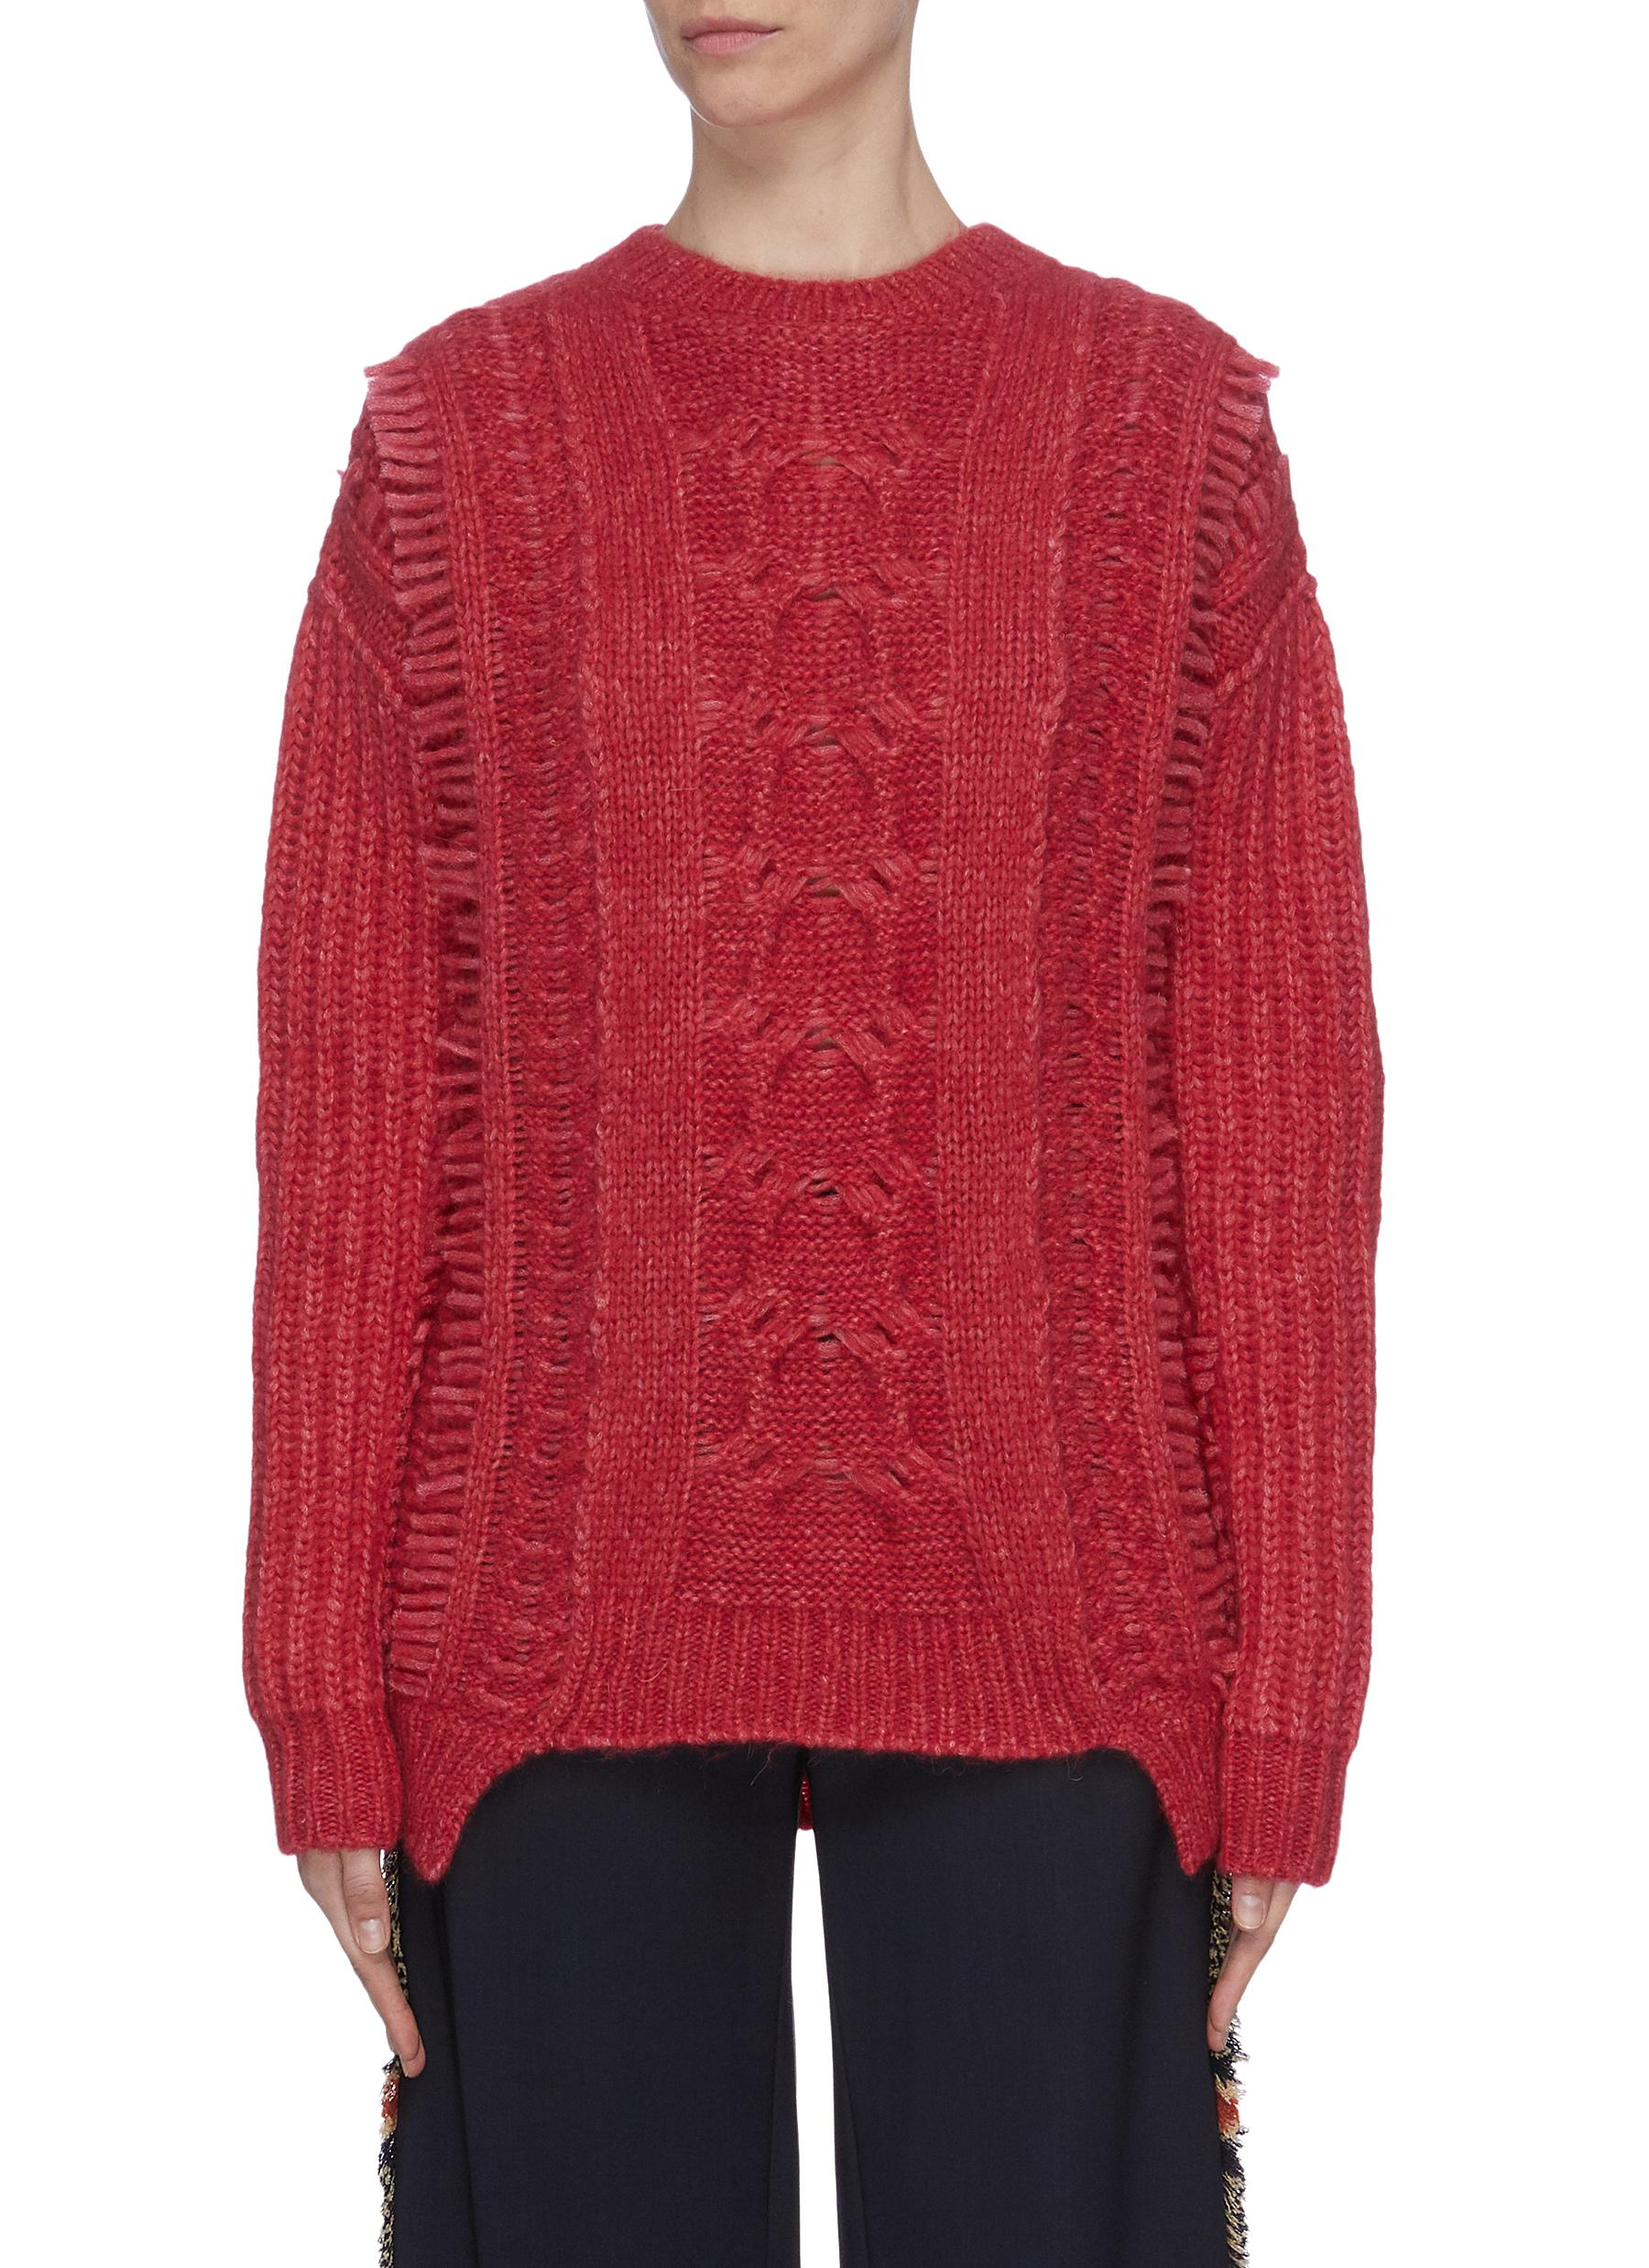 Fringed cable knit sweater by Stella Mccartney